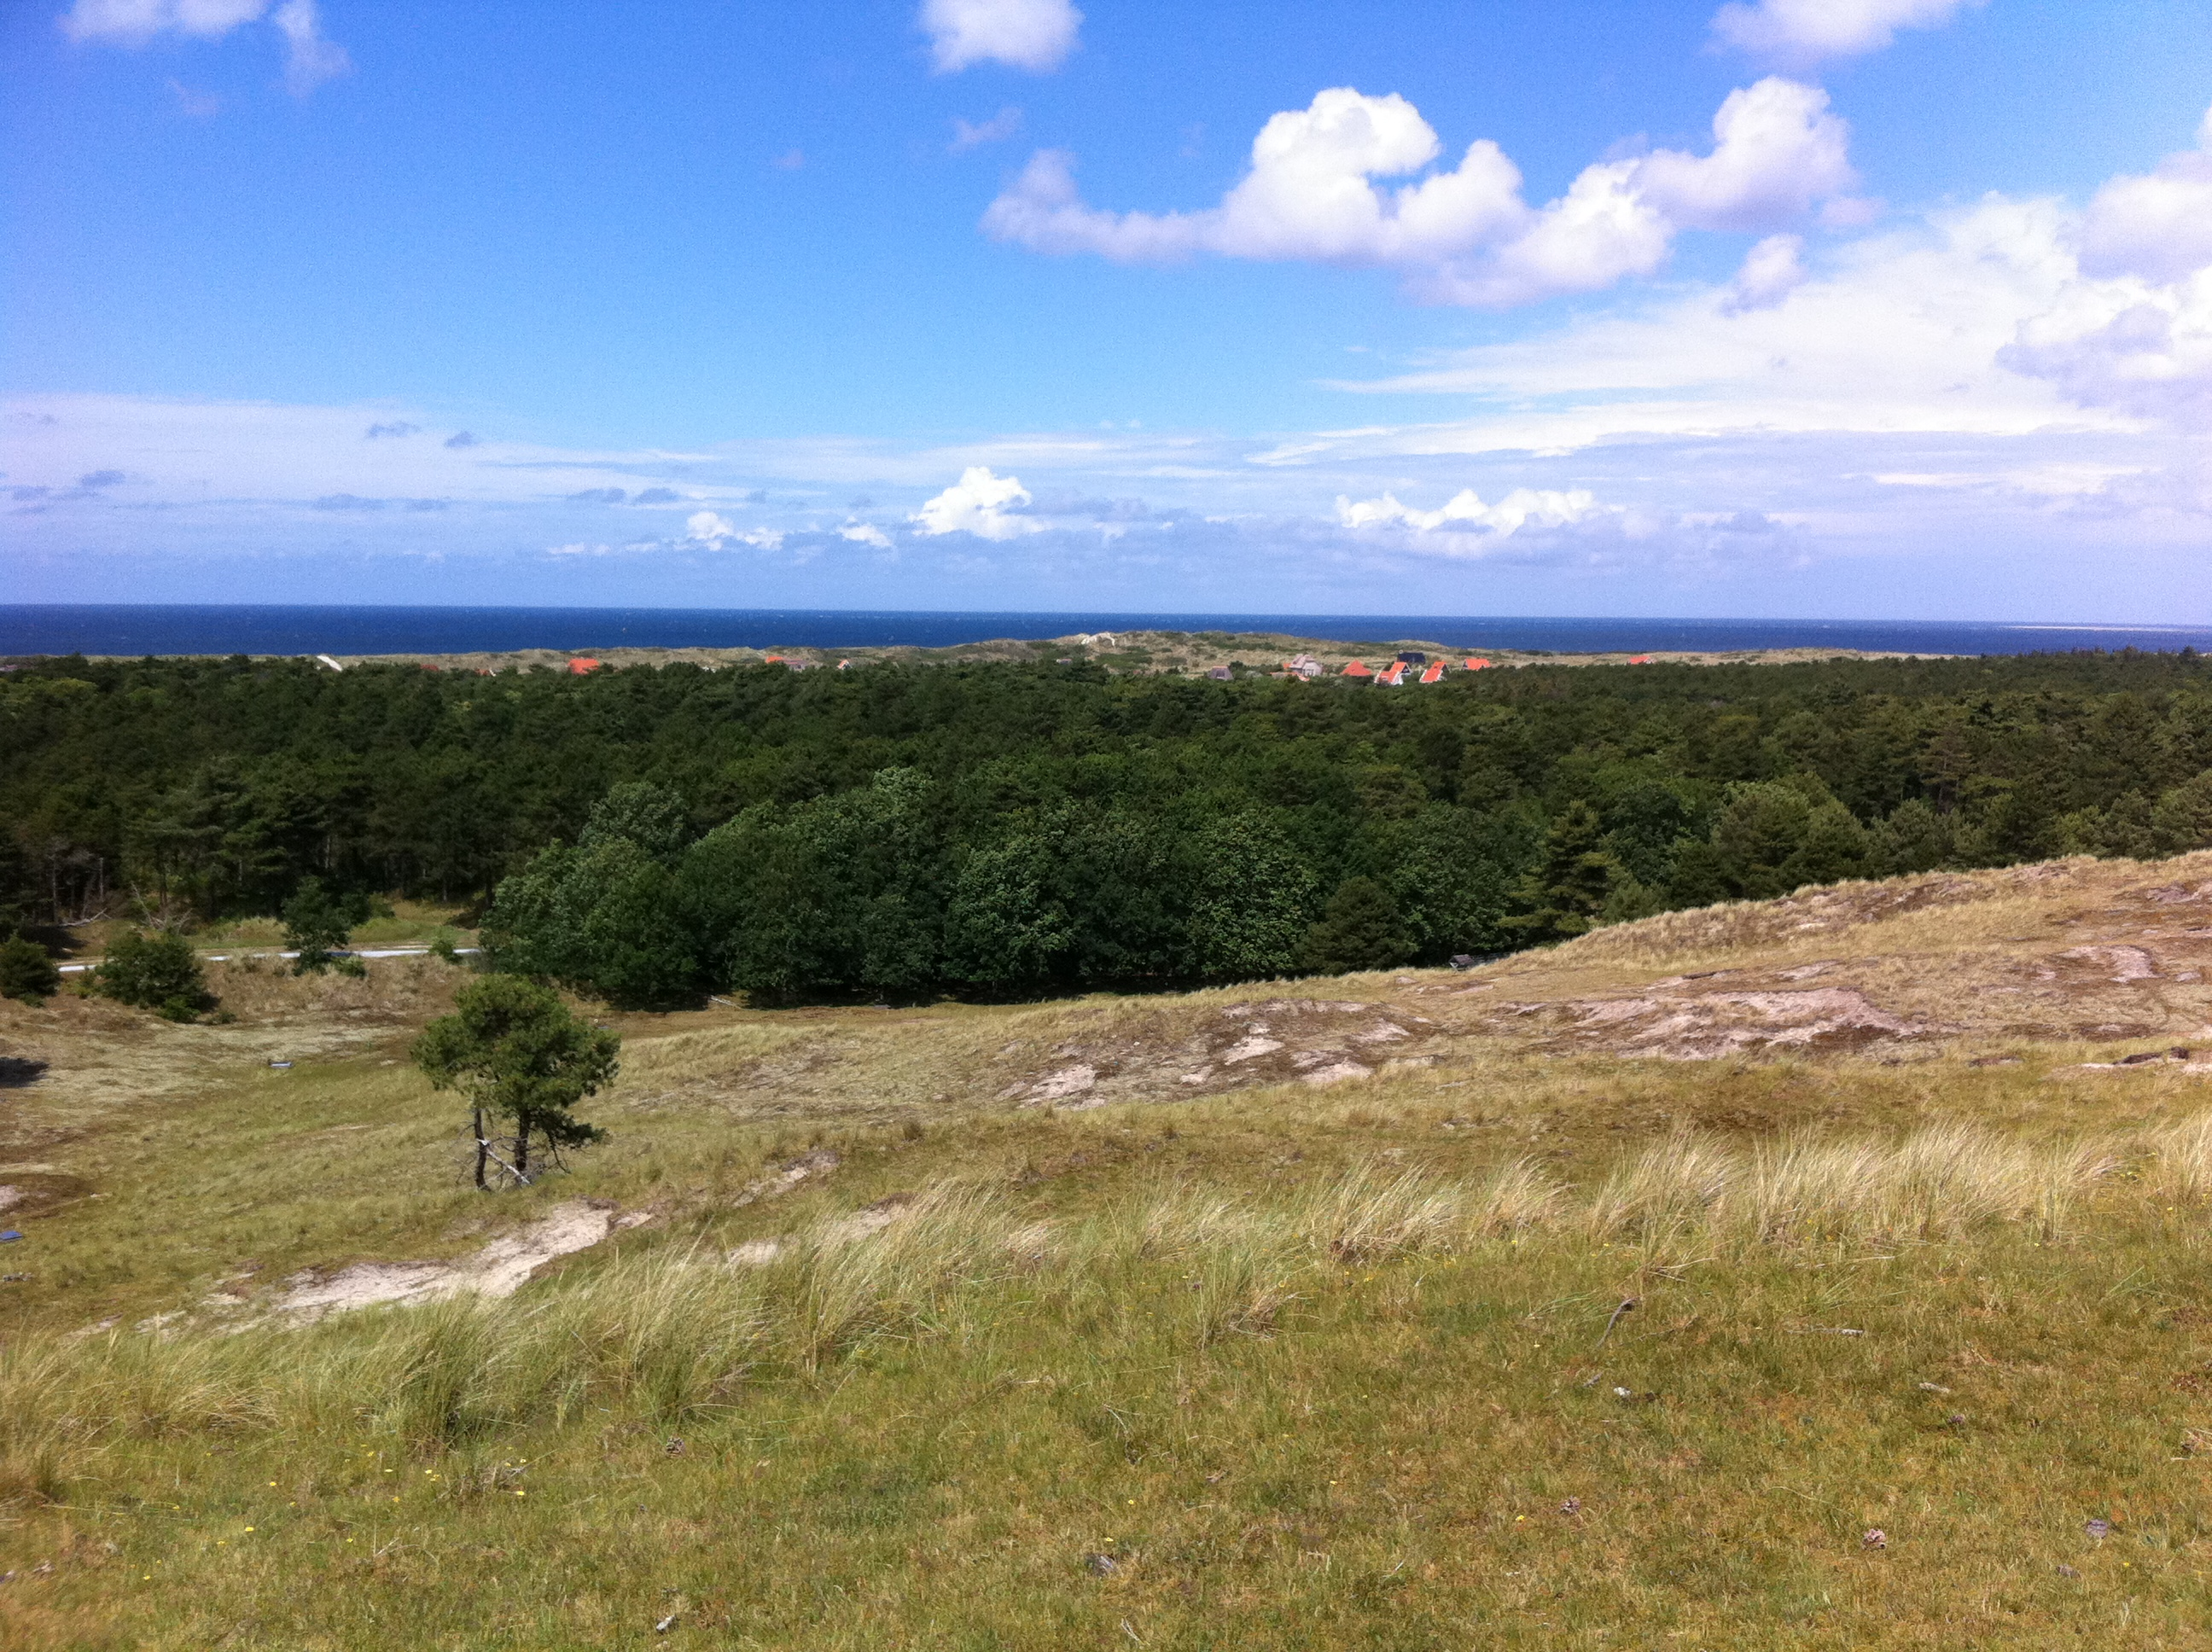 View to the north of Vlieland